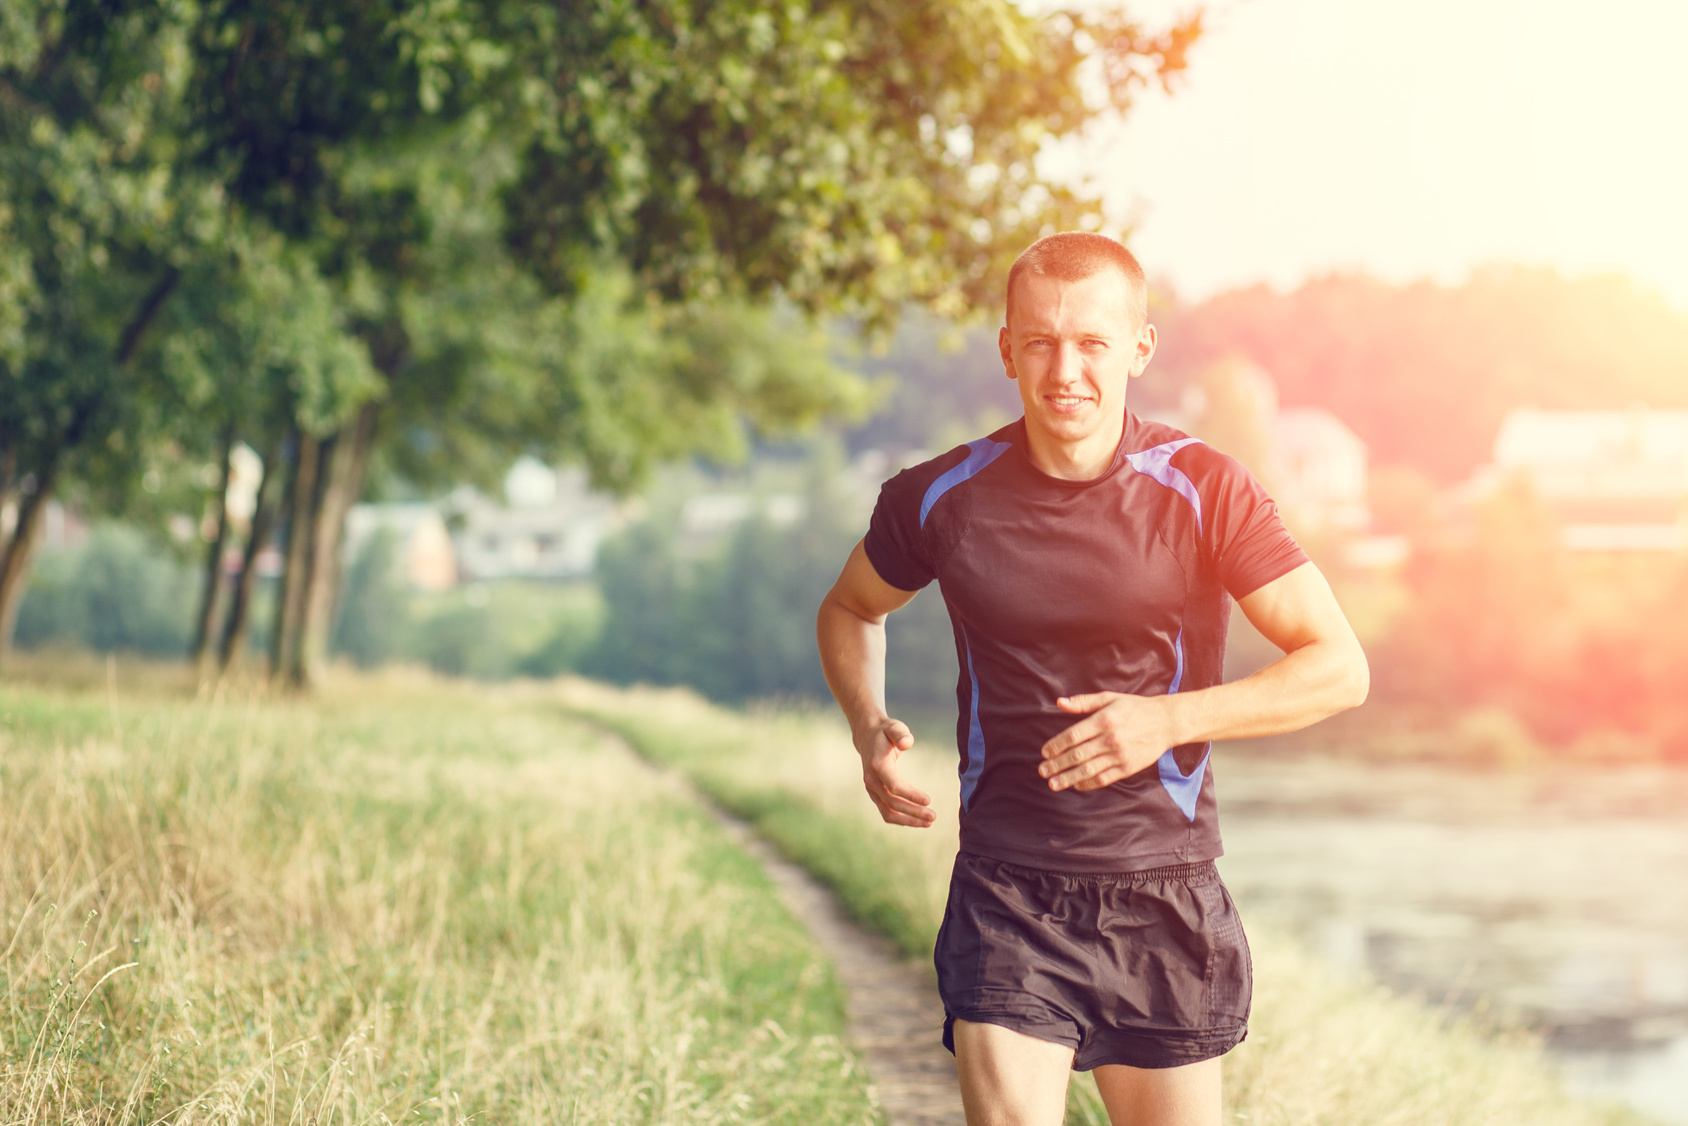 RPE Explained for runners